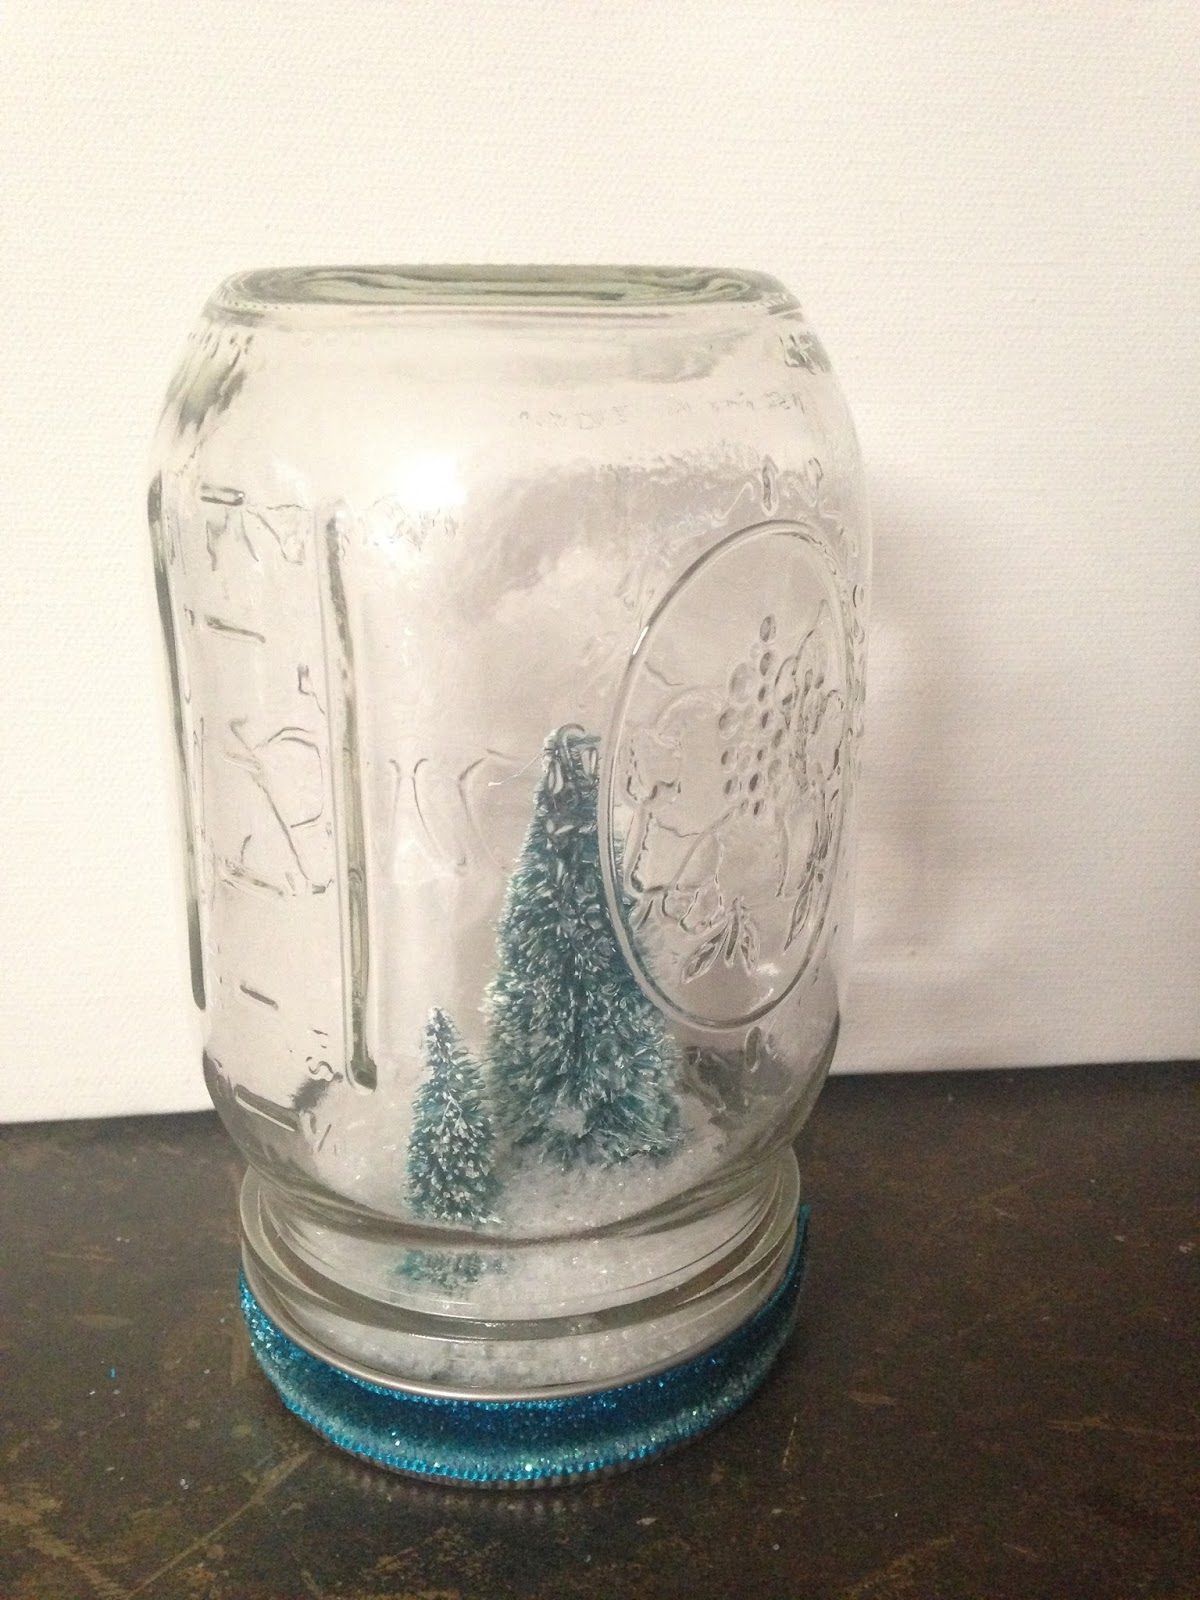 Quick and Easy Christmas Mason Jar Snow Globes @craftsavvy #craftwarehouse #christmas #diy #masonjar #snowglobe